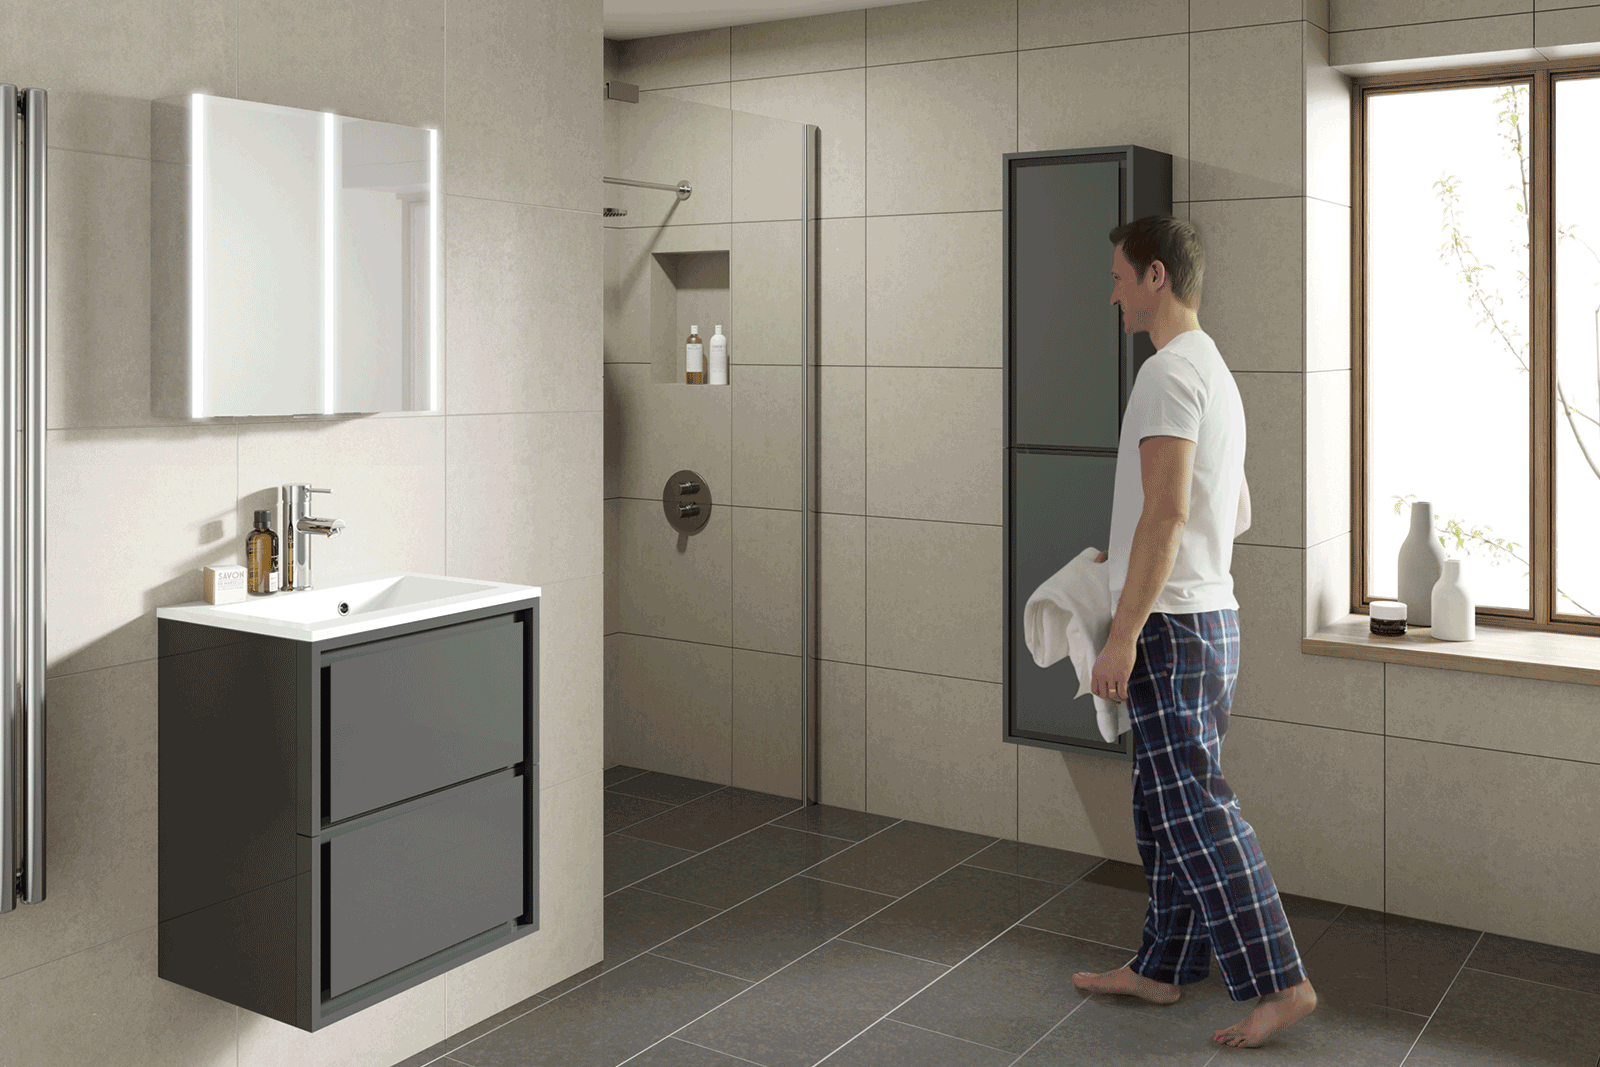 HIB duet anth wetroom roomset